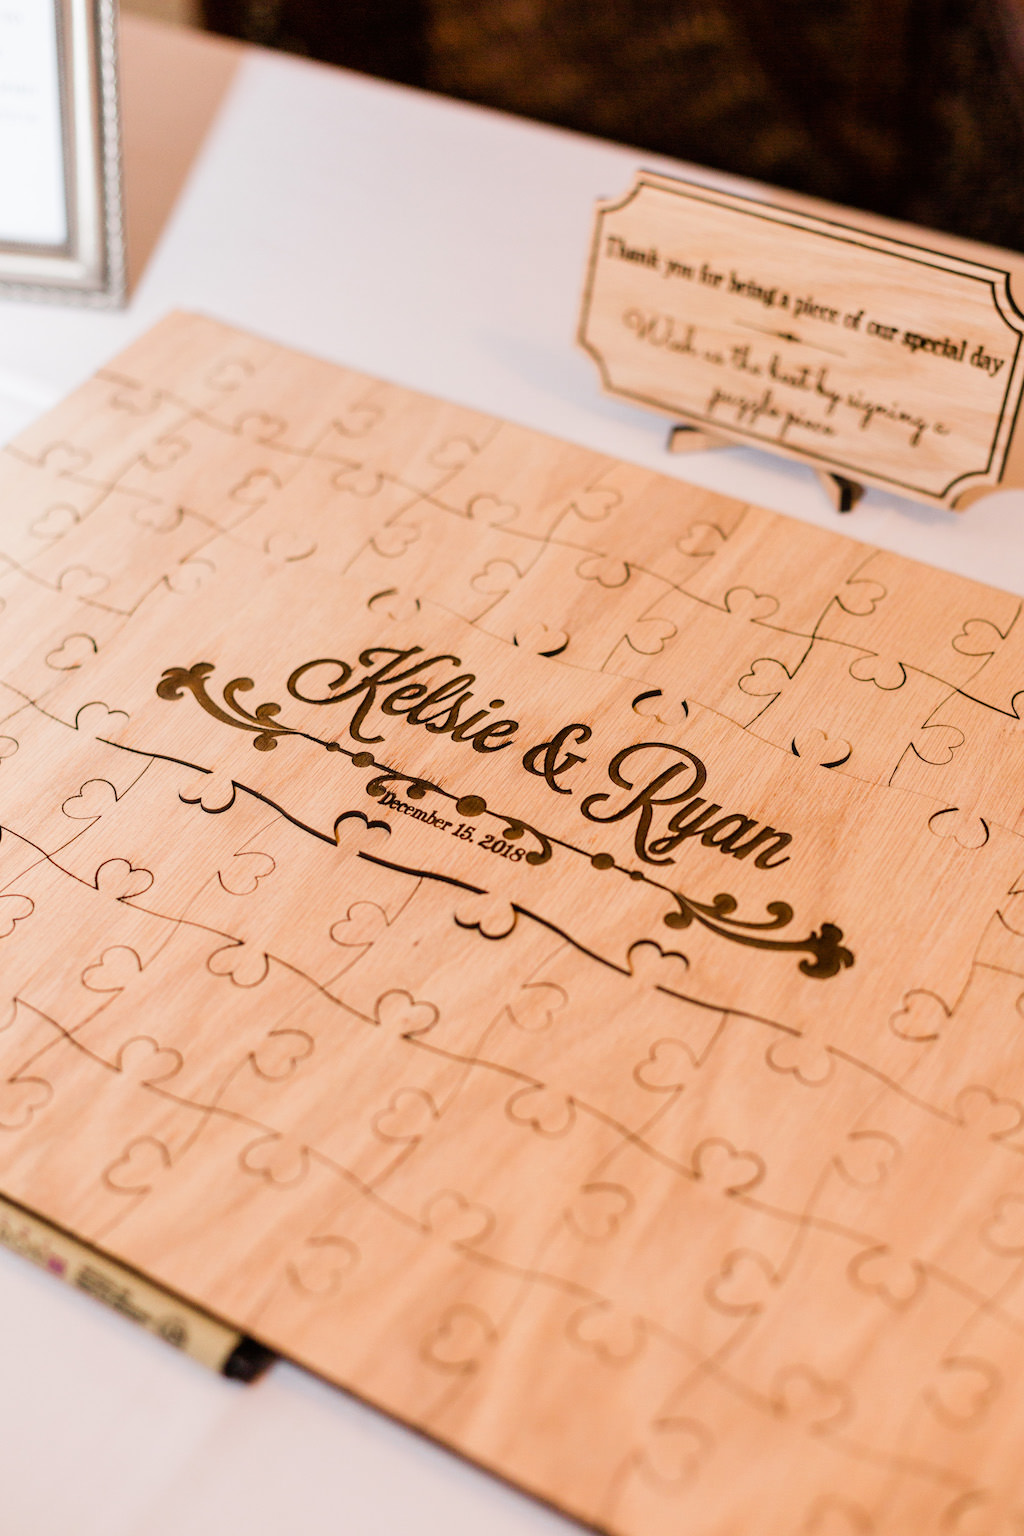 Creative, Unique Customized Wooden Puzzle Piece Guest Book at Clearwater Wedding Reception